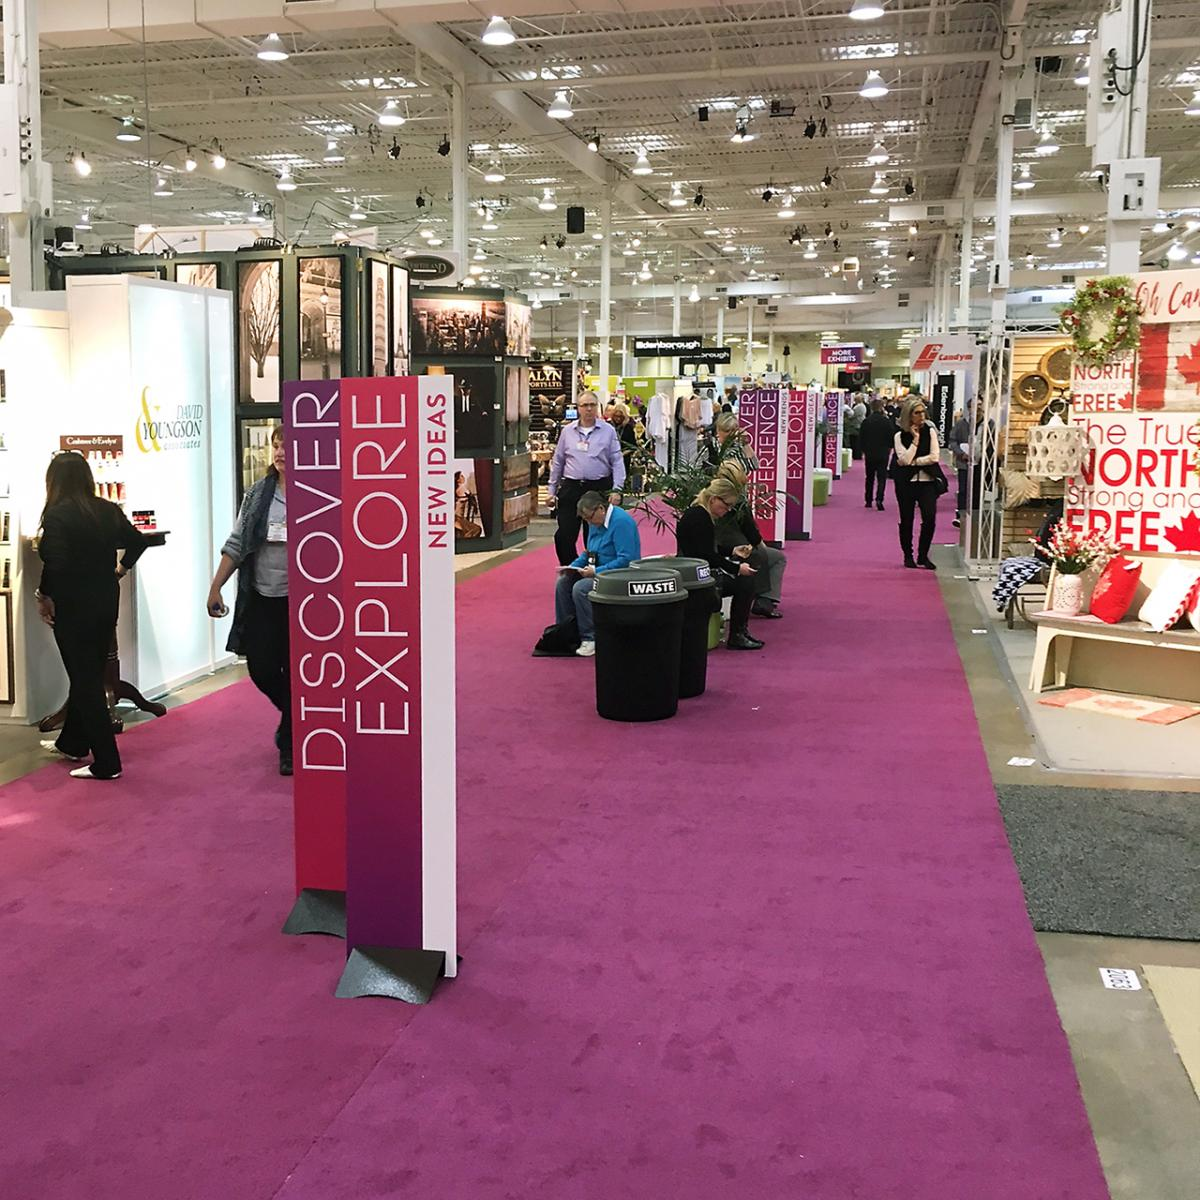 exhibit hall and booths